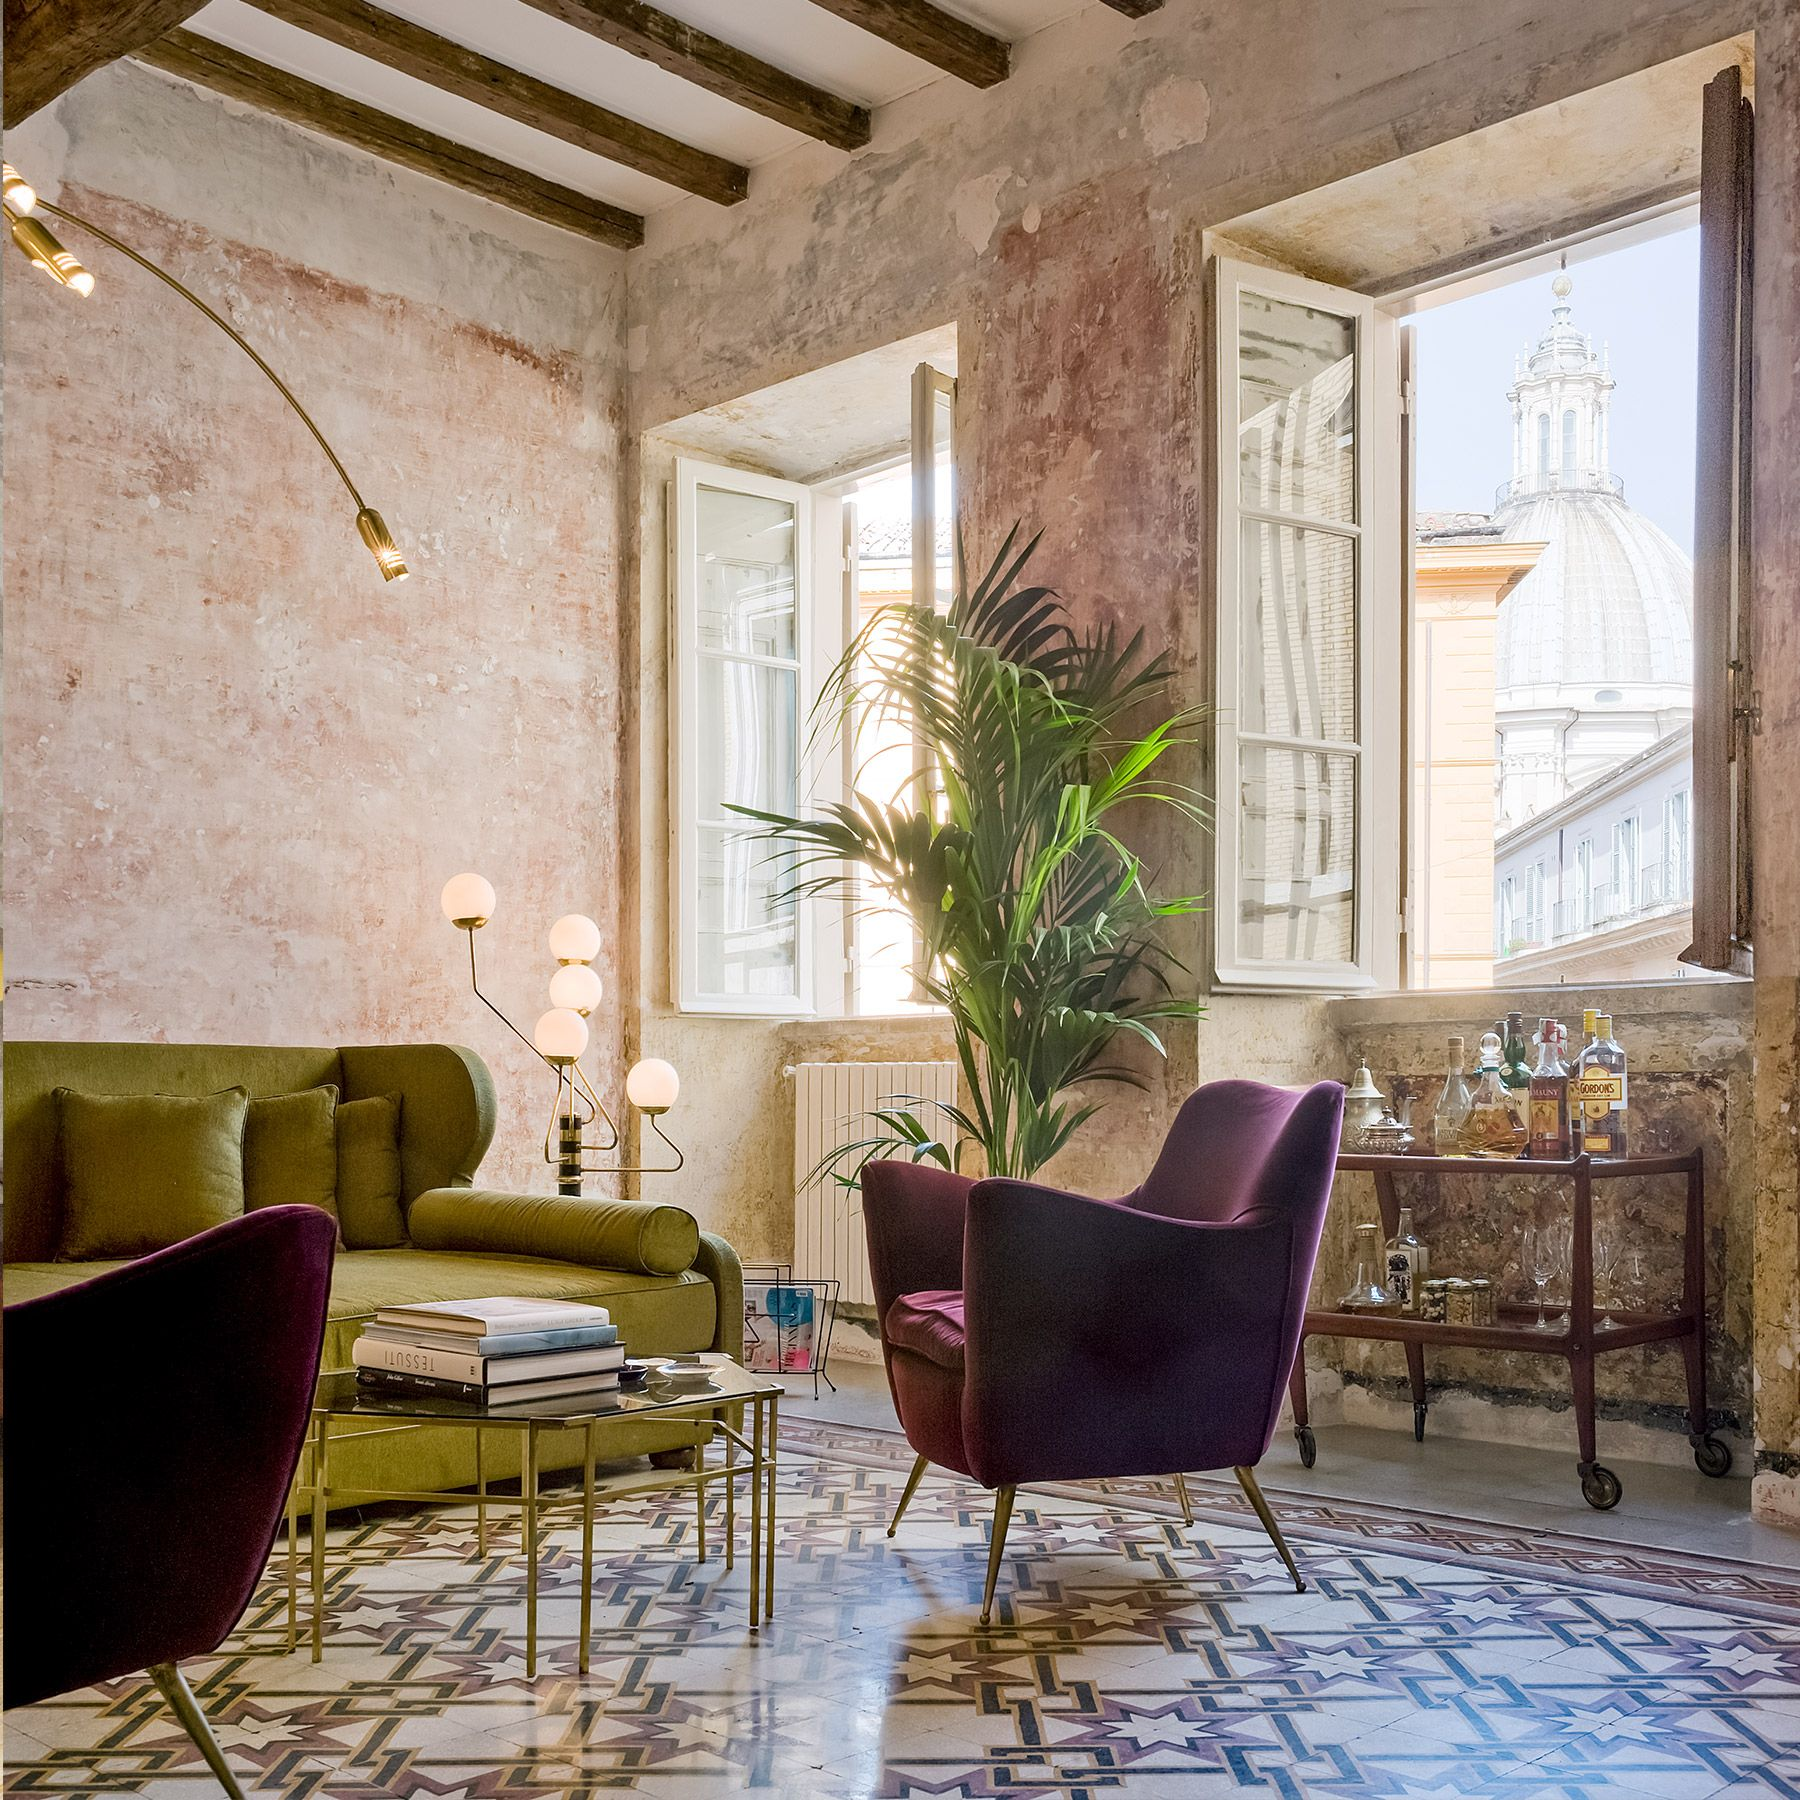 g rough in rome italy interior is filled with talian designers